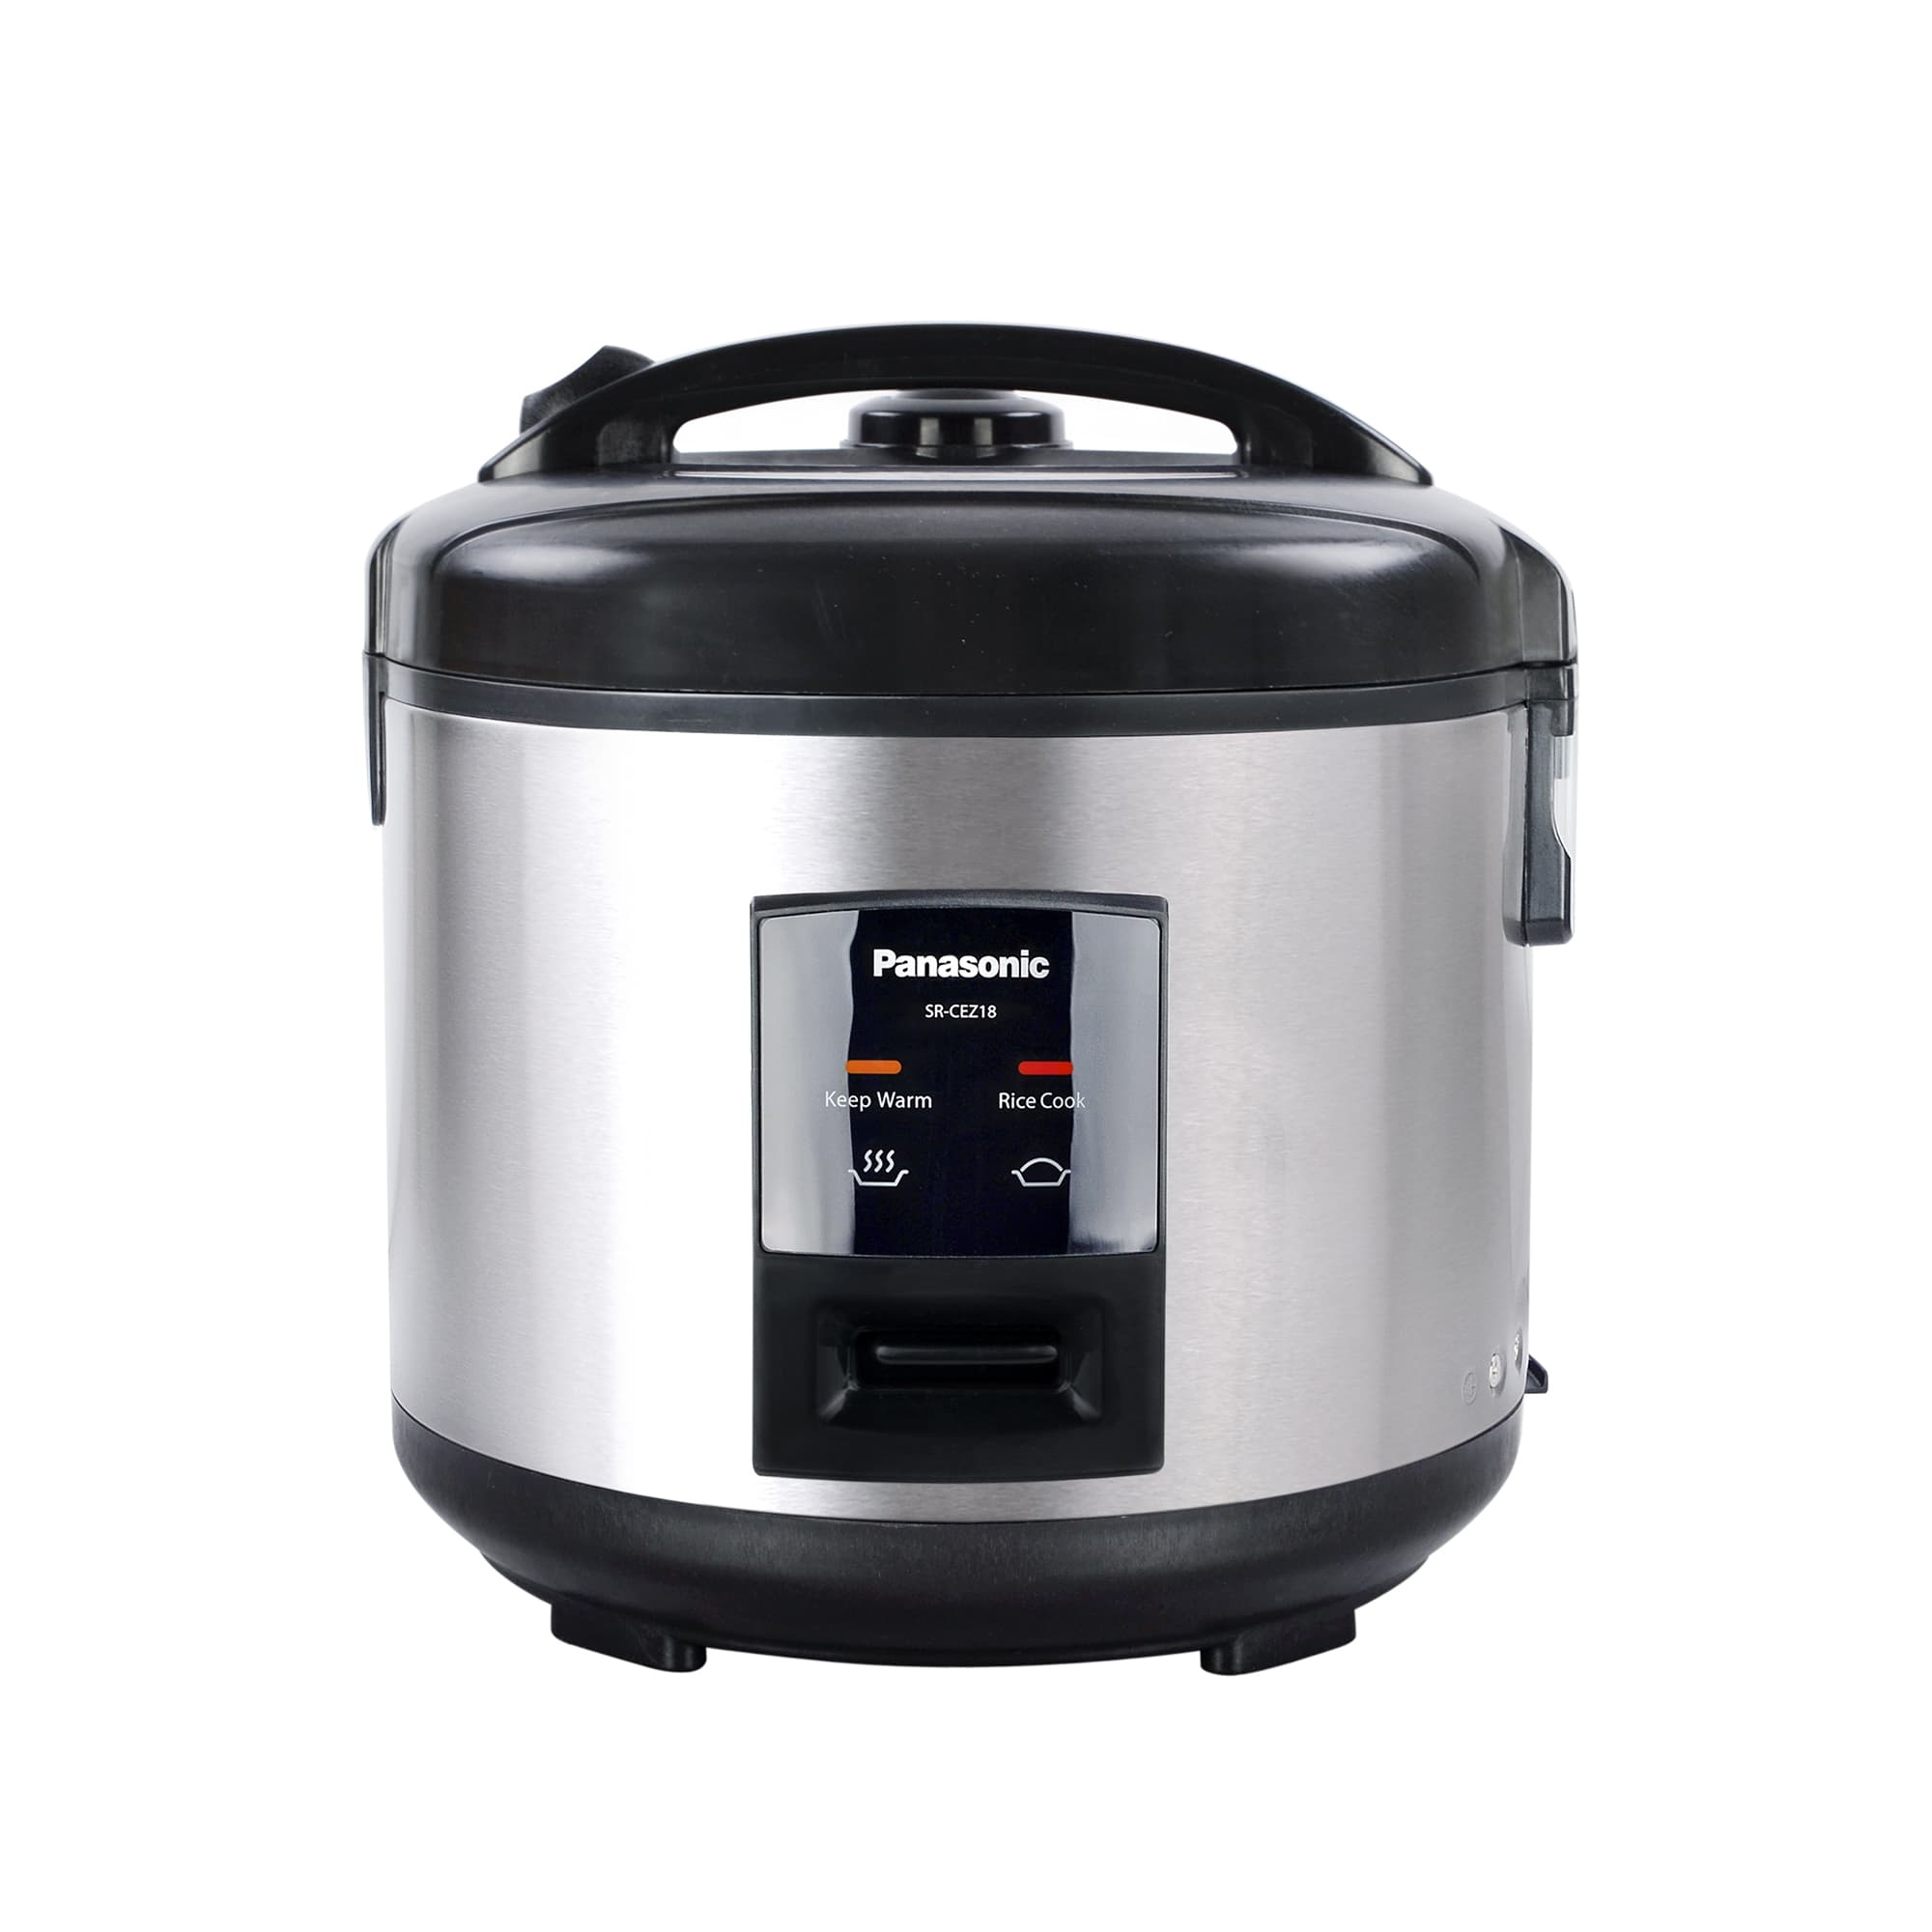 c3f47705d24 More Than Just A Rice Cooker! 4 Best Rice Cooker Brands You Can Buy ...